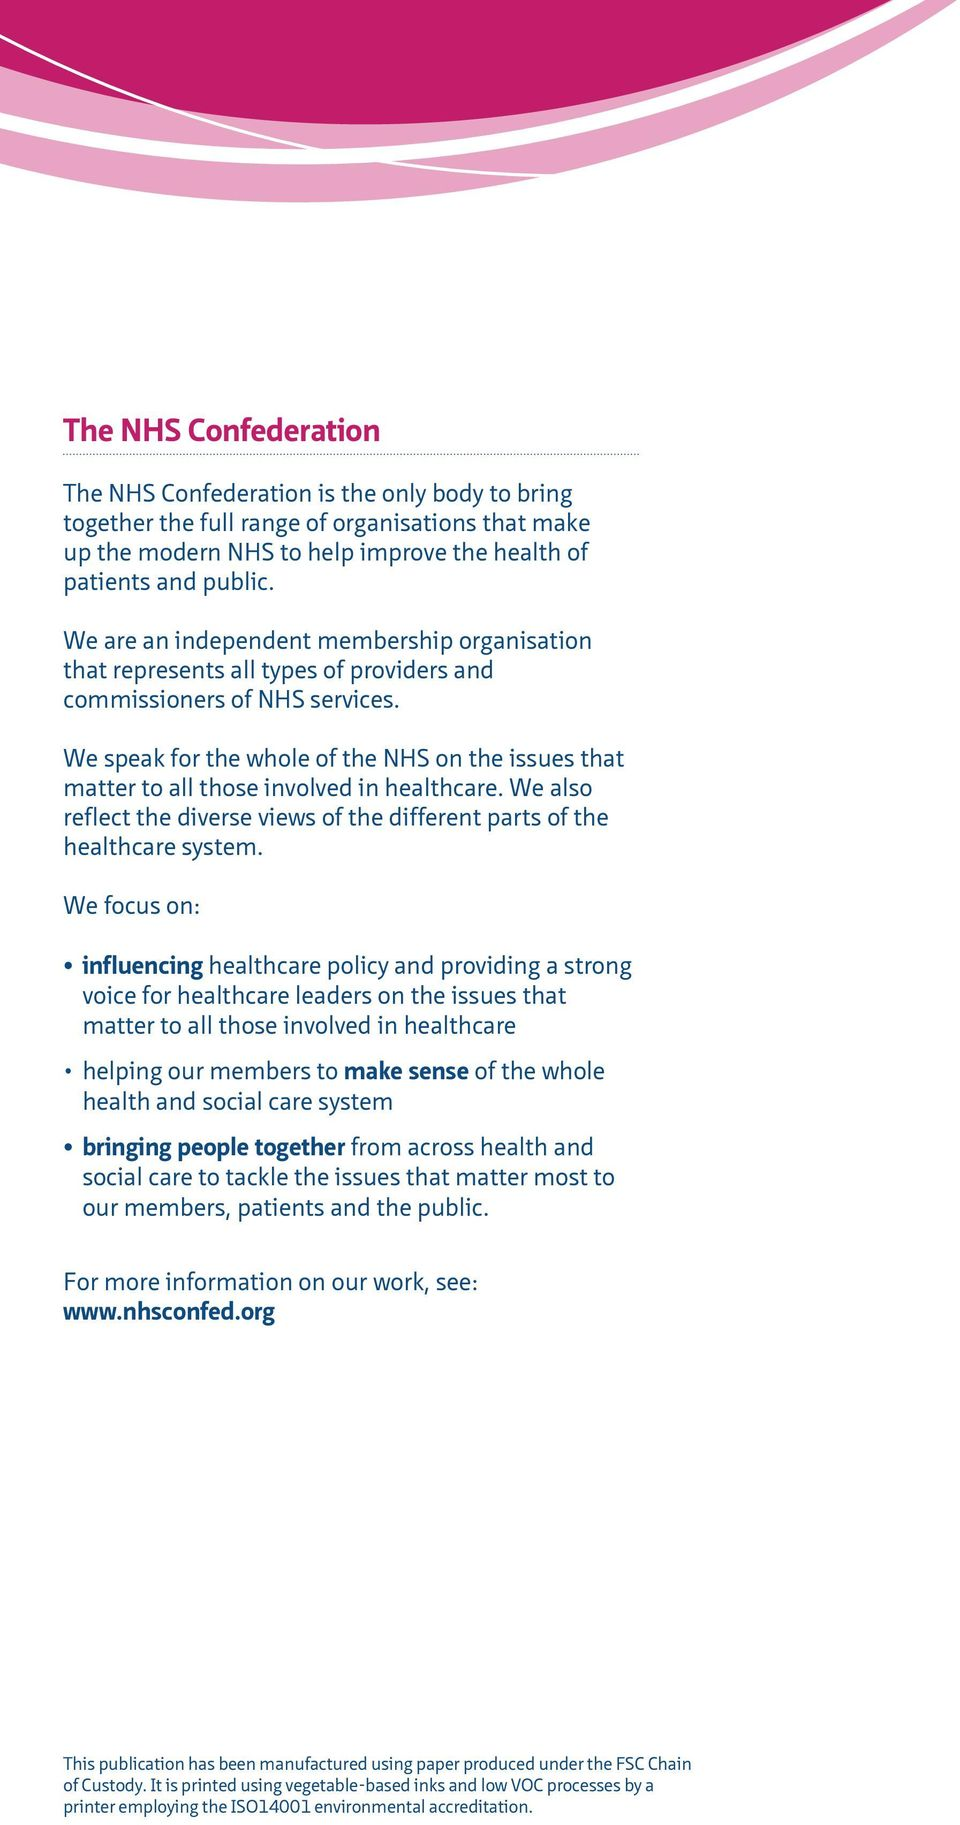 We speak for the whole of the NHS on the issues that matter to all those involved in healthcare. We also reflect the diverse views of the different parts of the healthcare system.